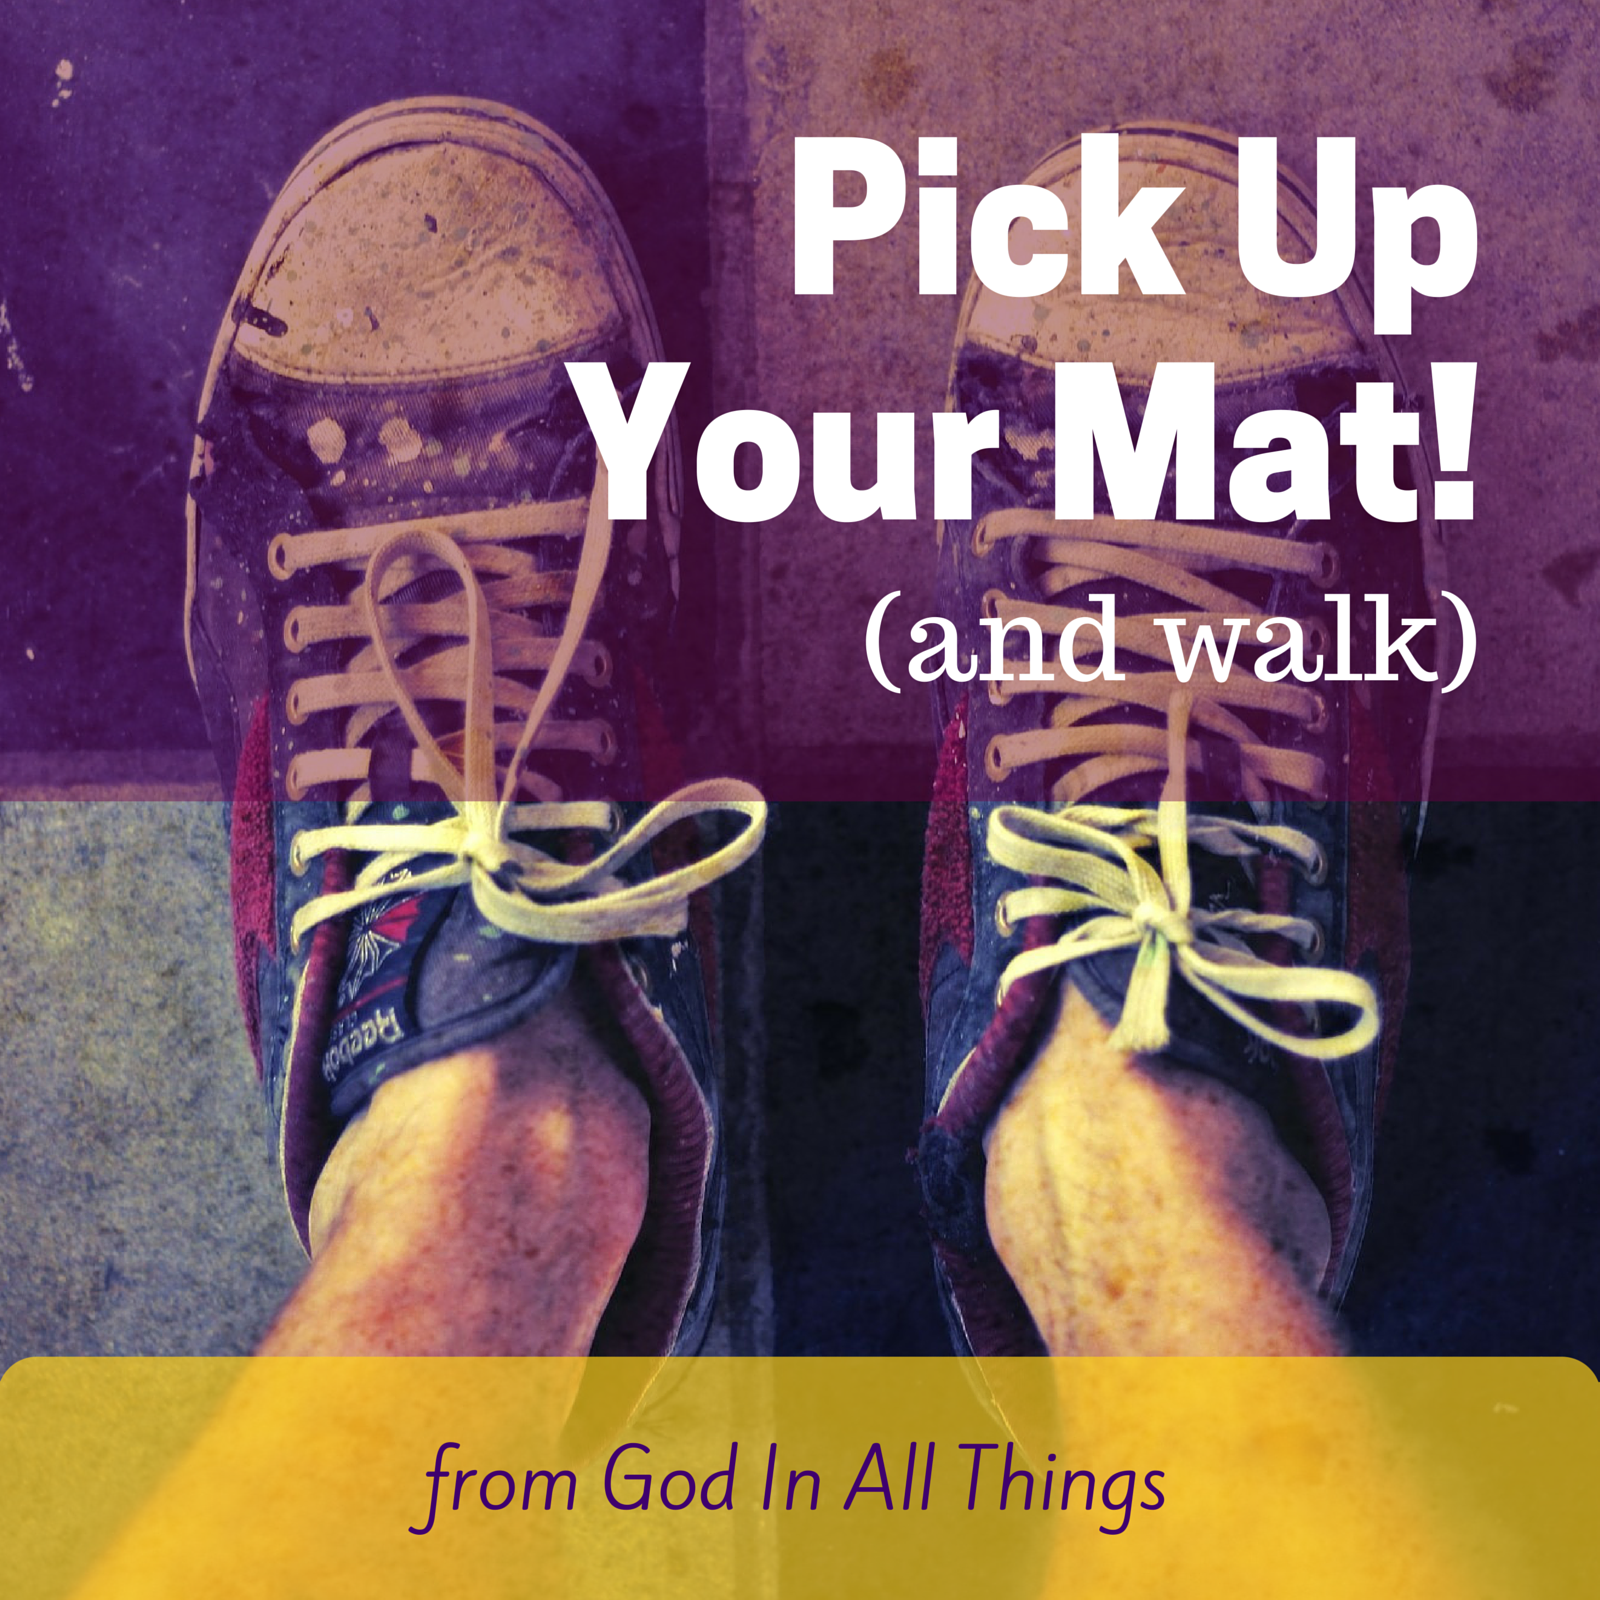 Pick Up Your Mat! (And Walk) – An Imaginative Meditation